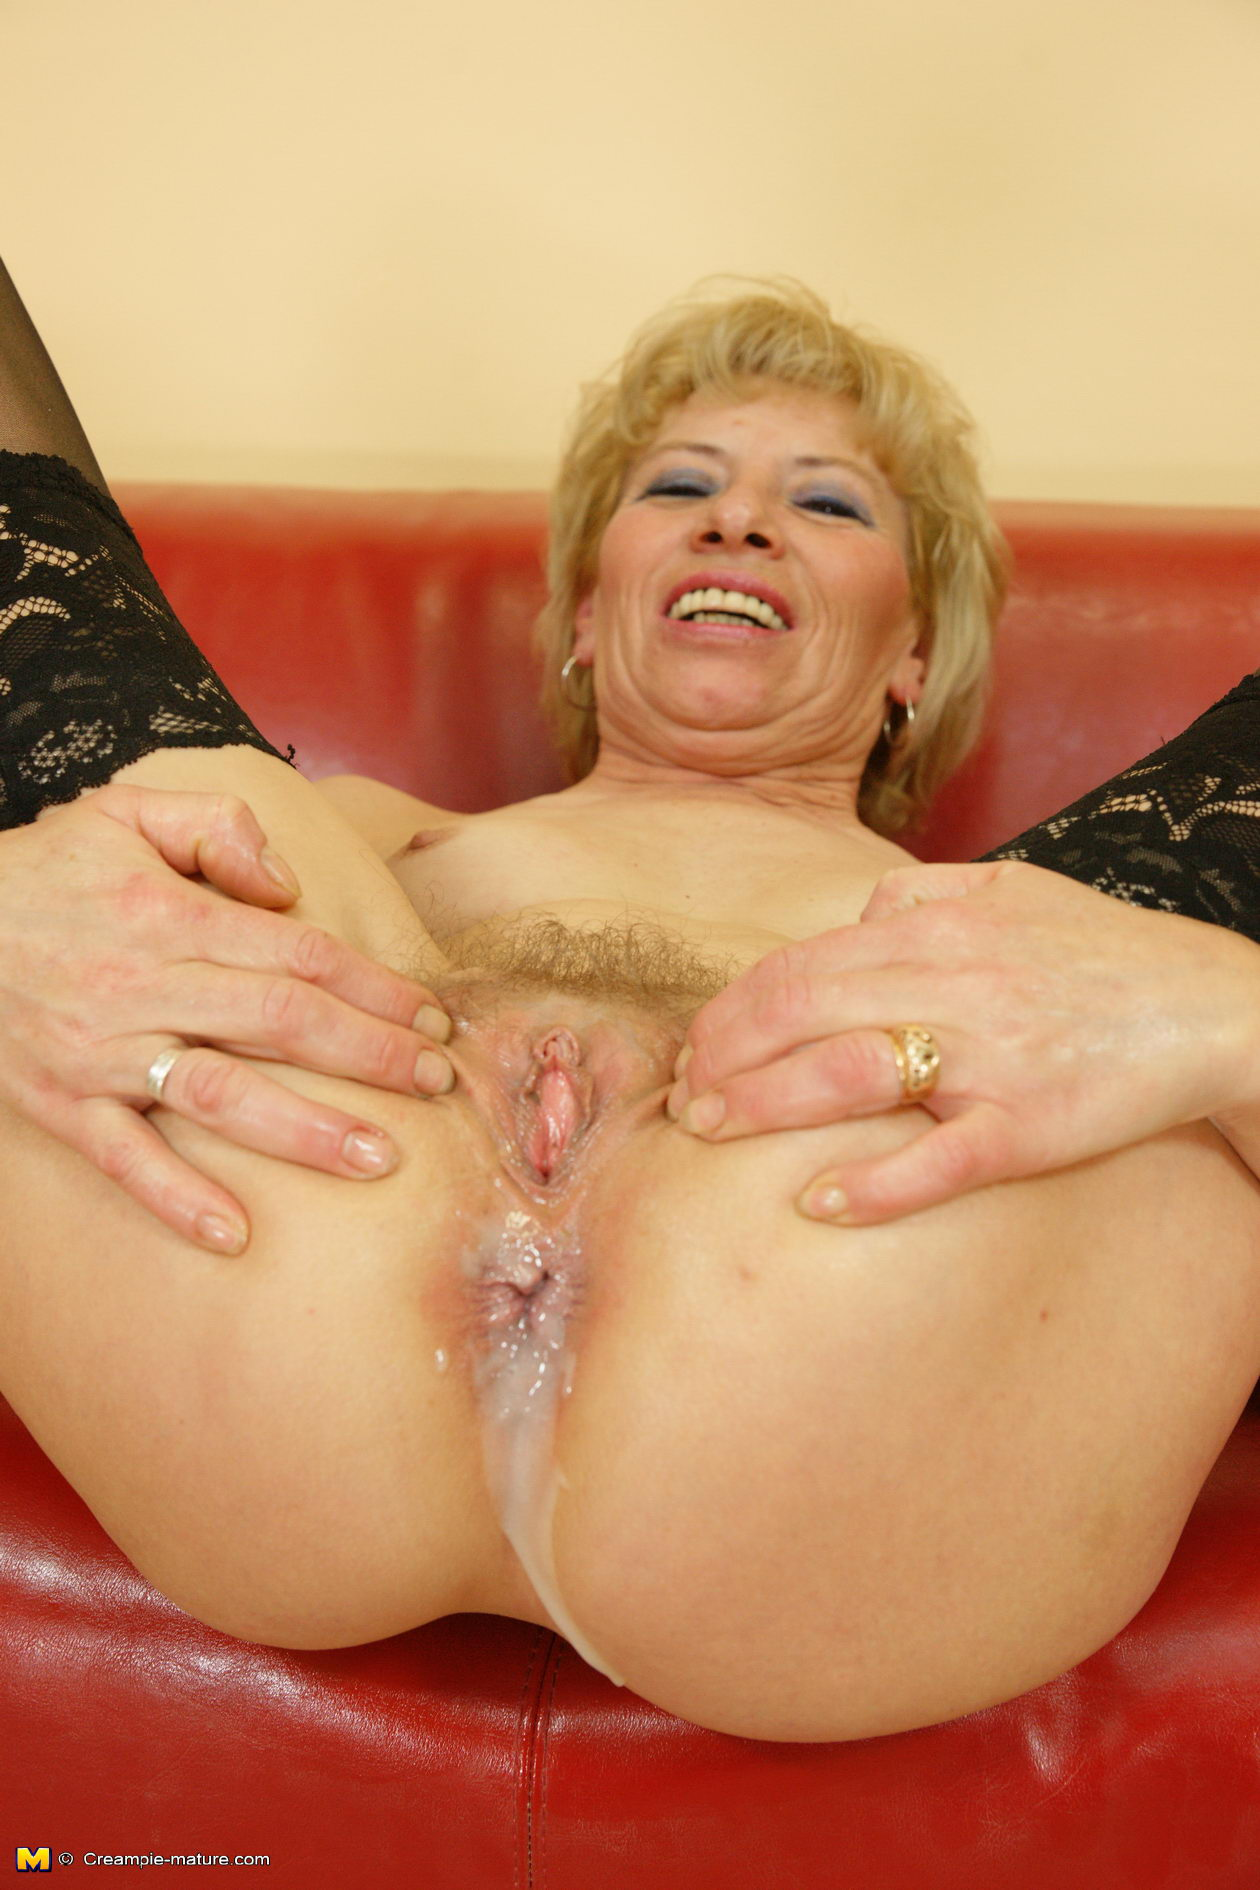 Greampie-mature Creampie Mature 10511